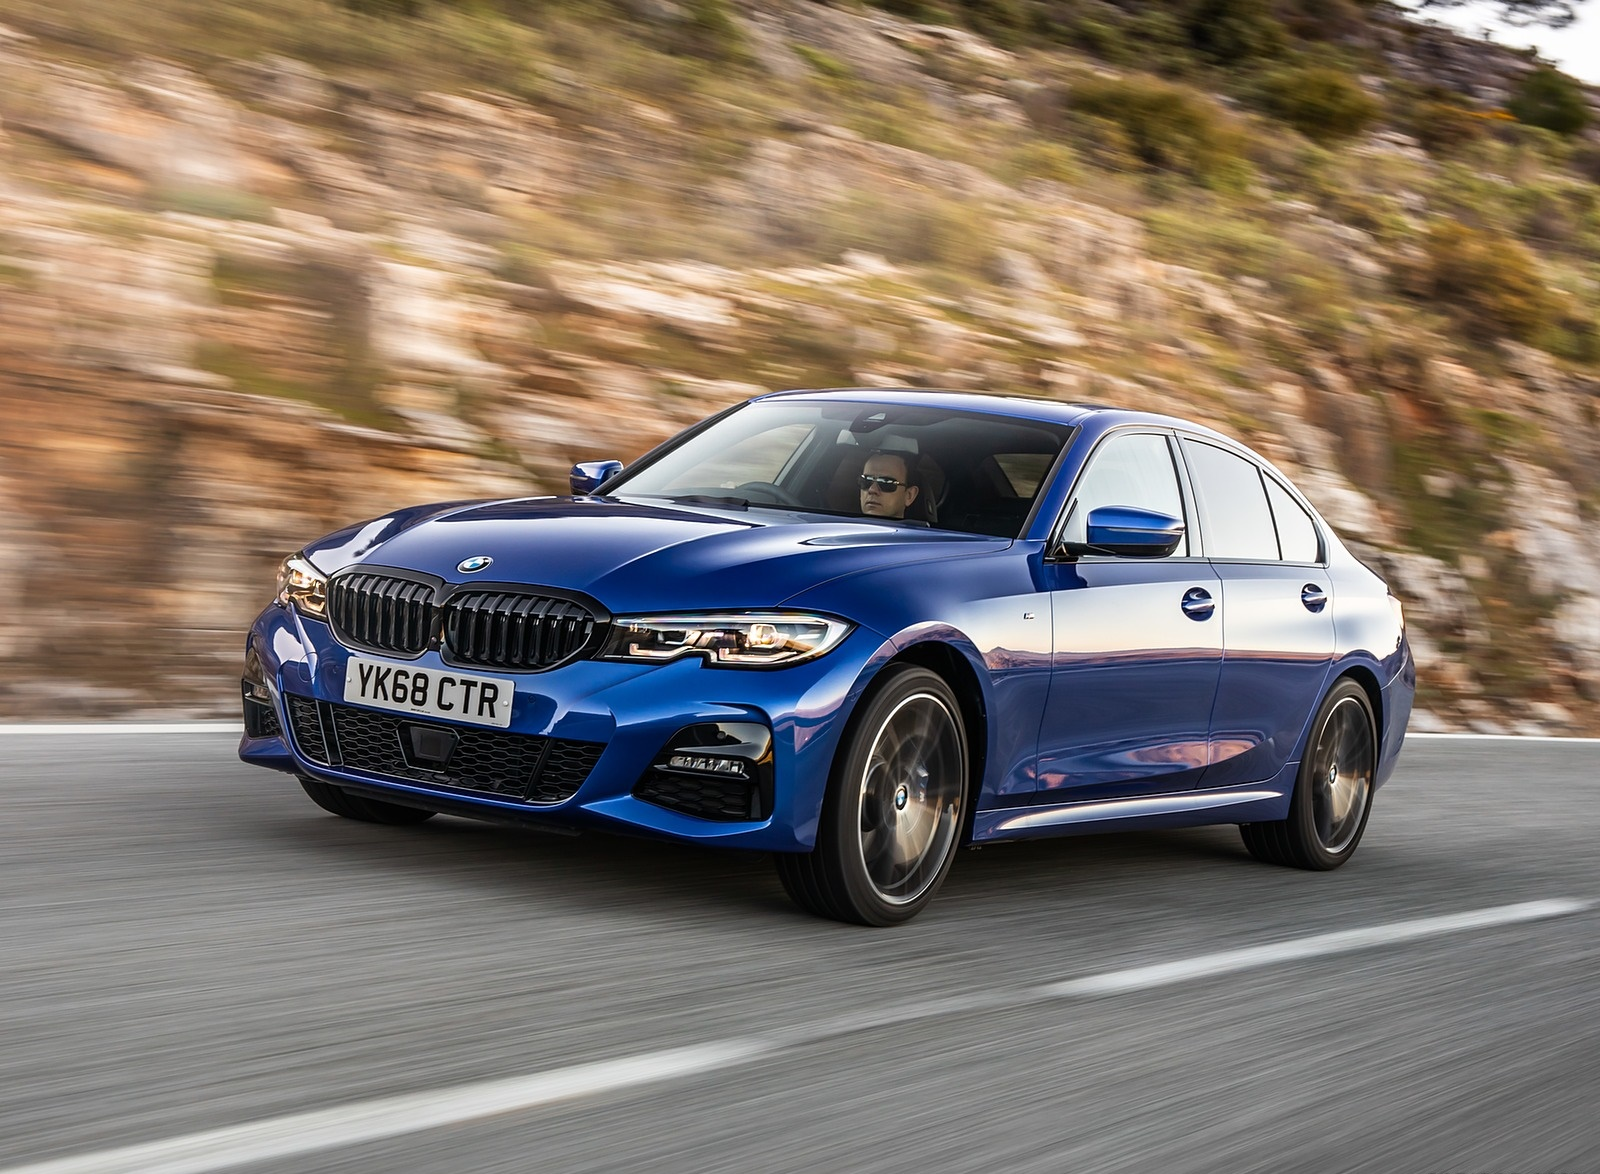 2019 BMW 3-Series Saloon 320d xDrive (UK-Spec) Front Three-Quarter Wallpapers (4)